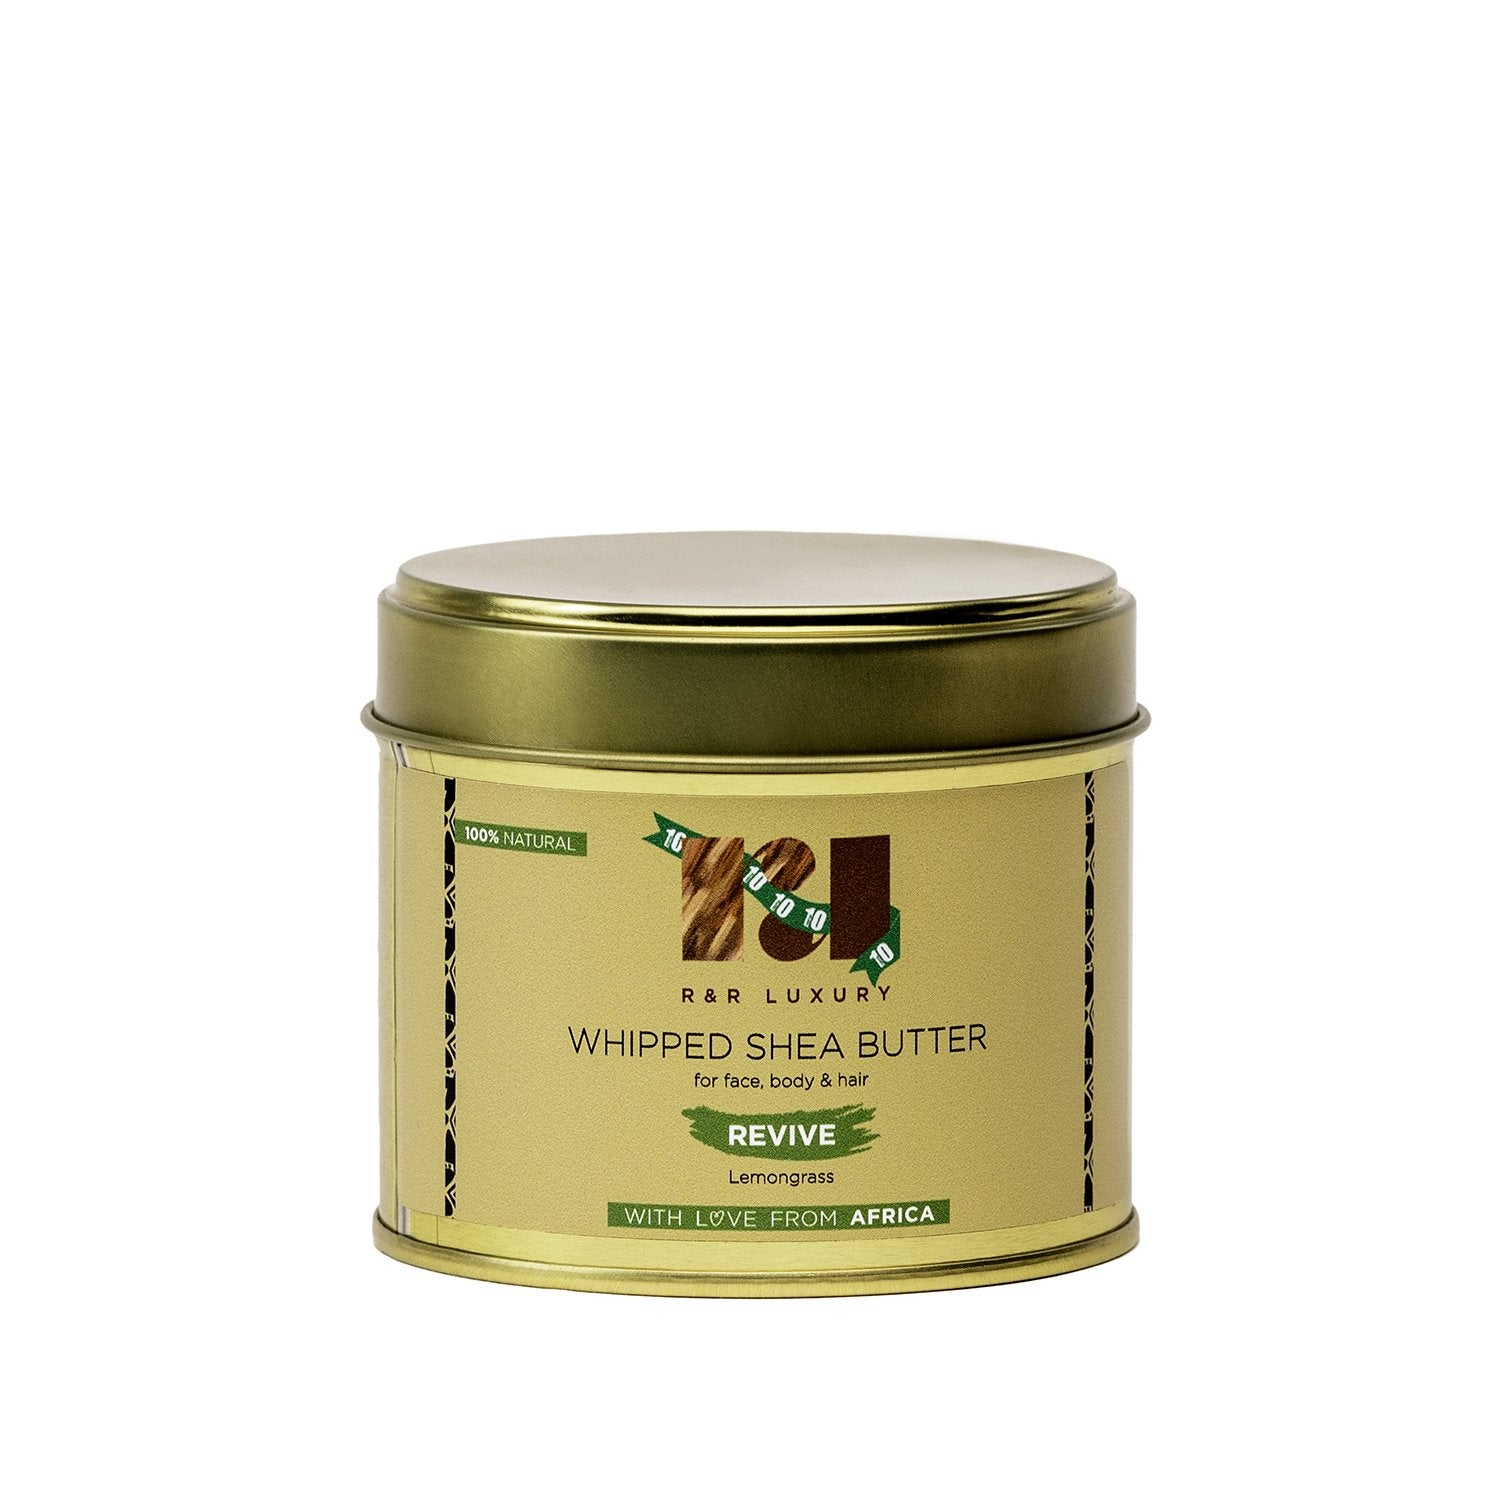 Eco-Friendly Whipped Shea Butter - Revive (Lemongrass)